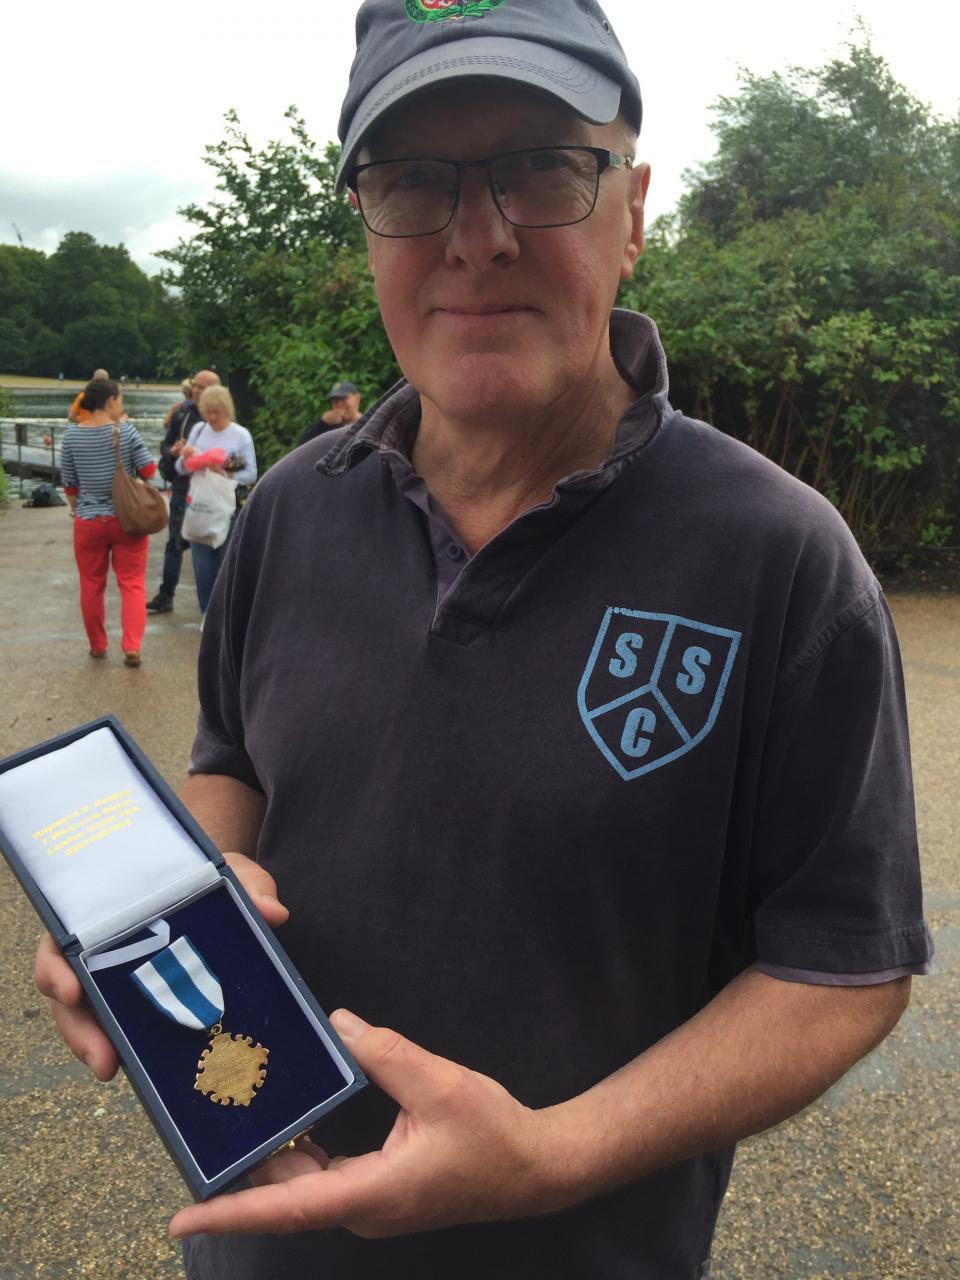 Bobby Baxter with medal from 1889